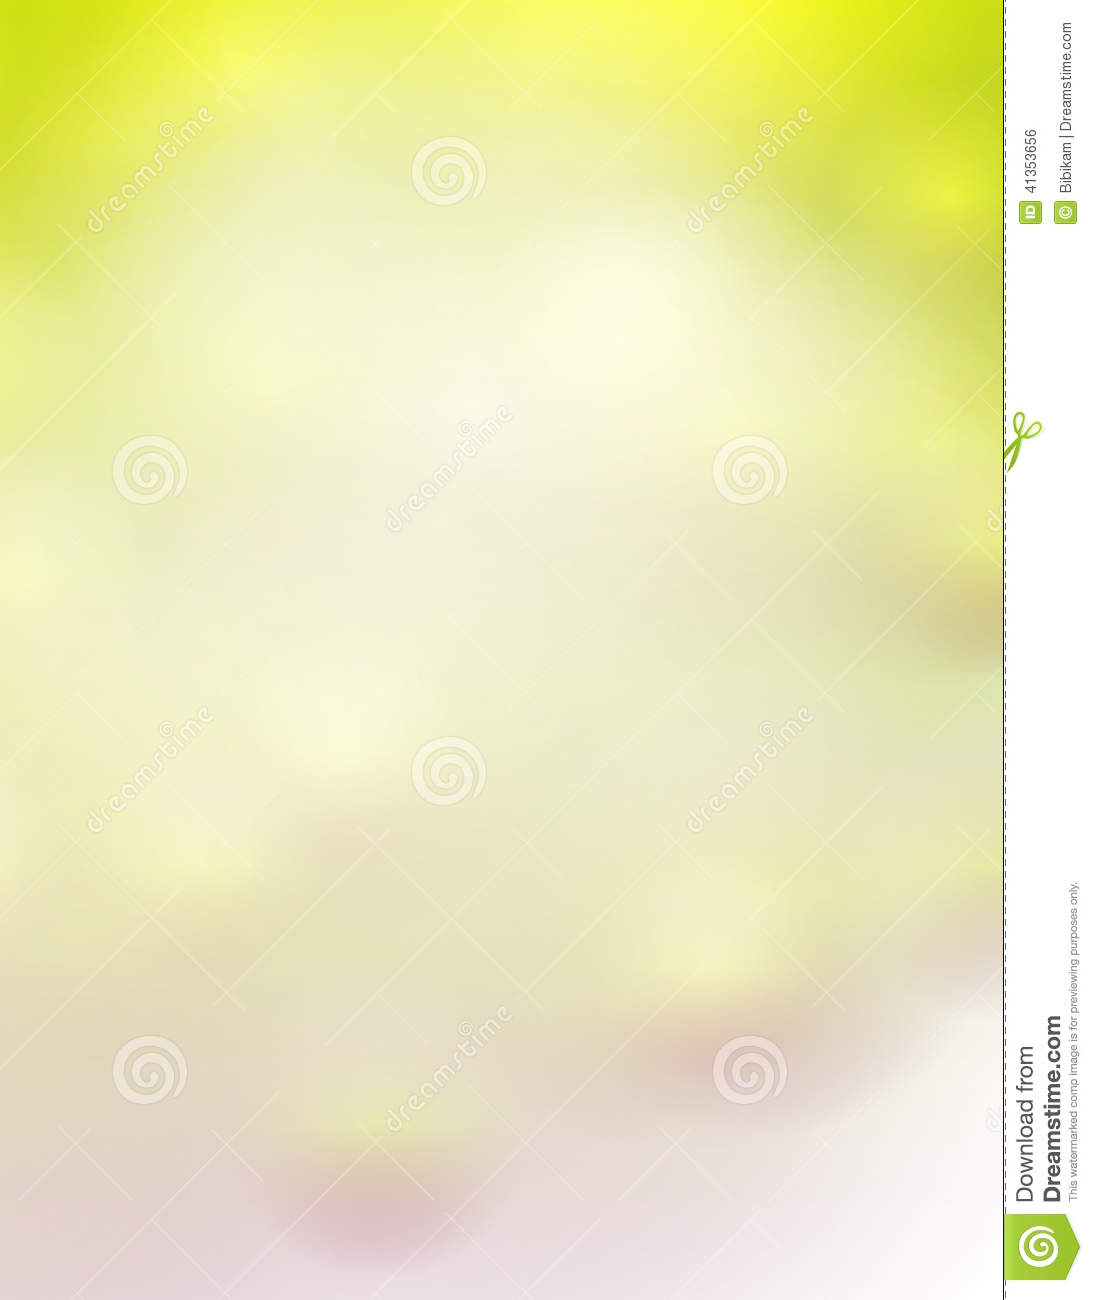 Poster Design Template Background Stock Vector Image